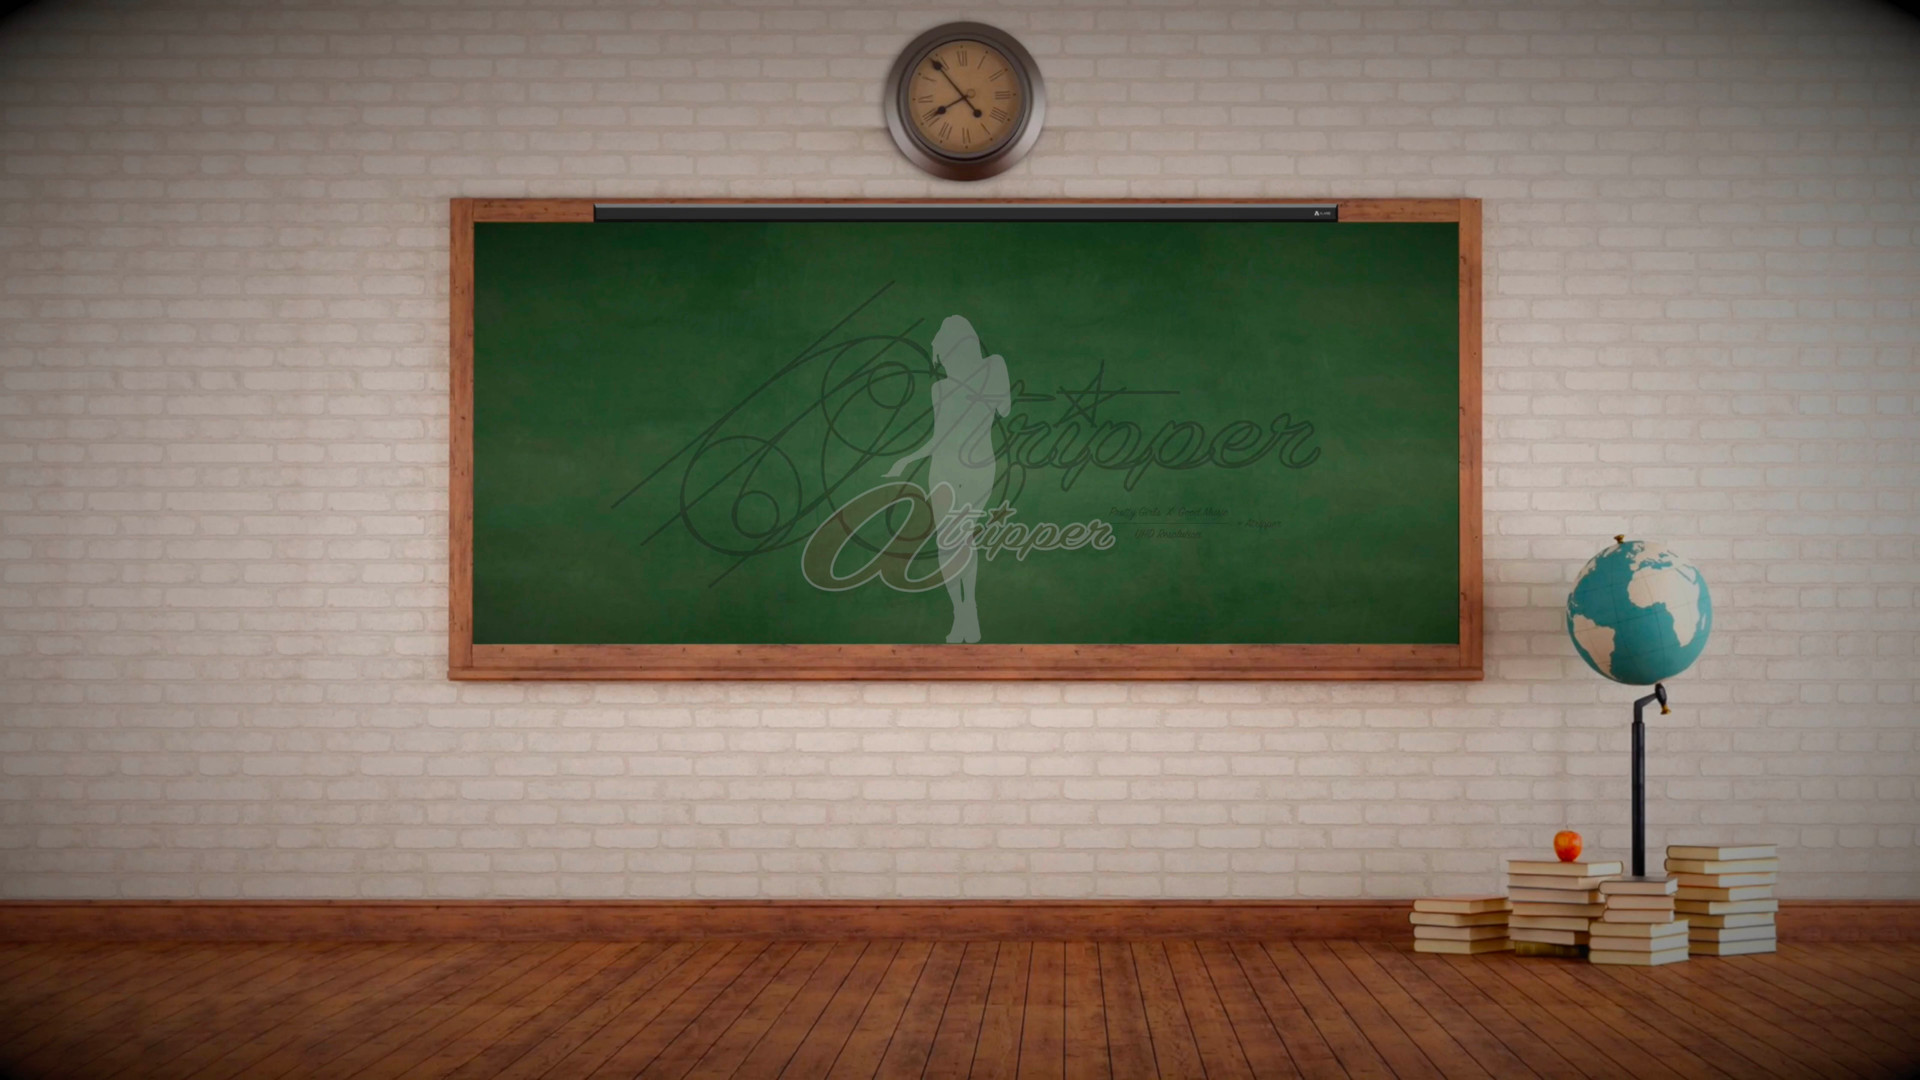 Atripper- The classroom.jpg